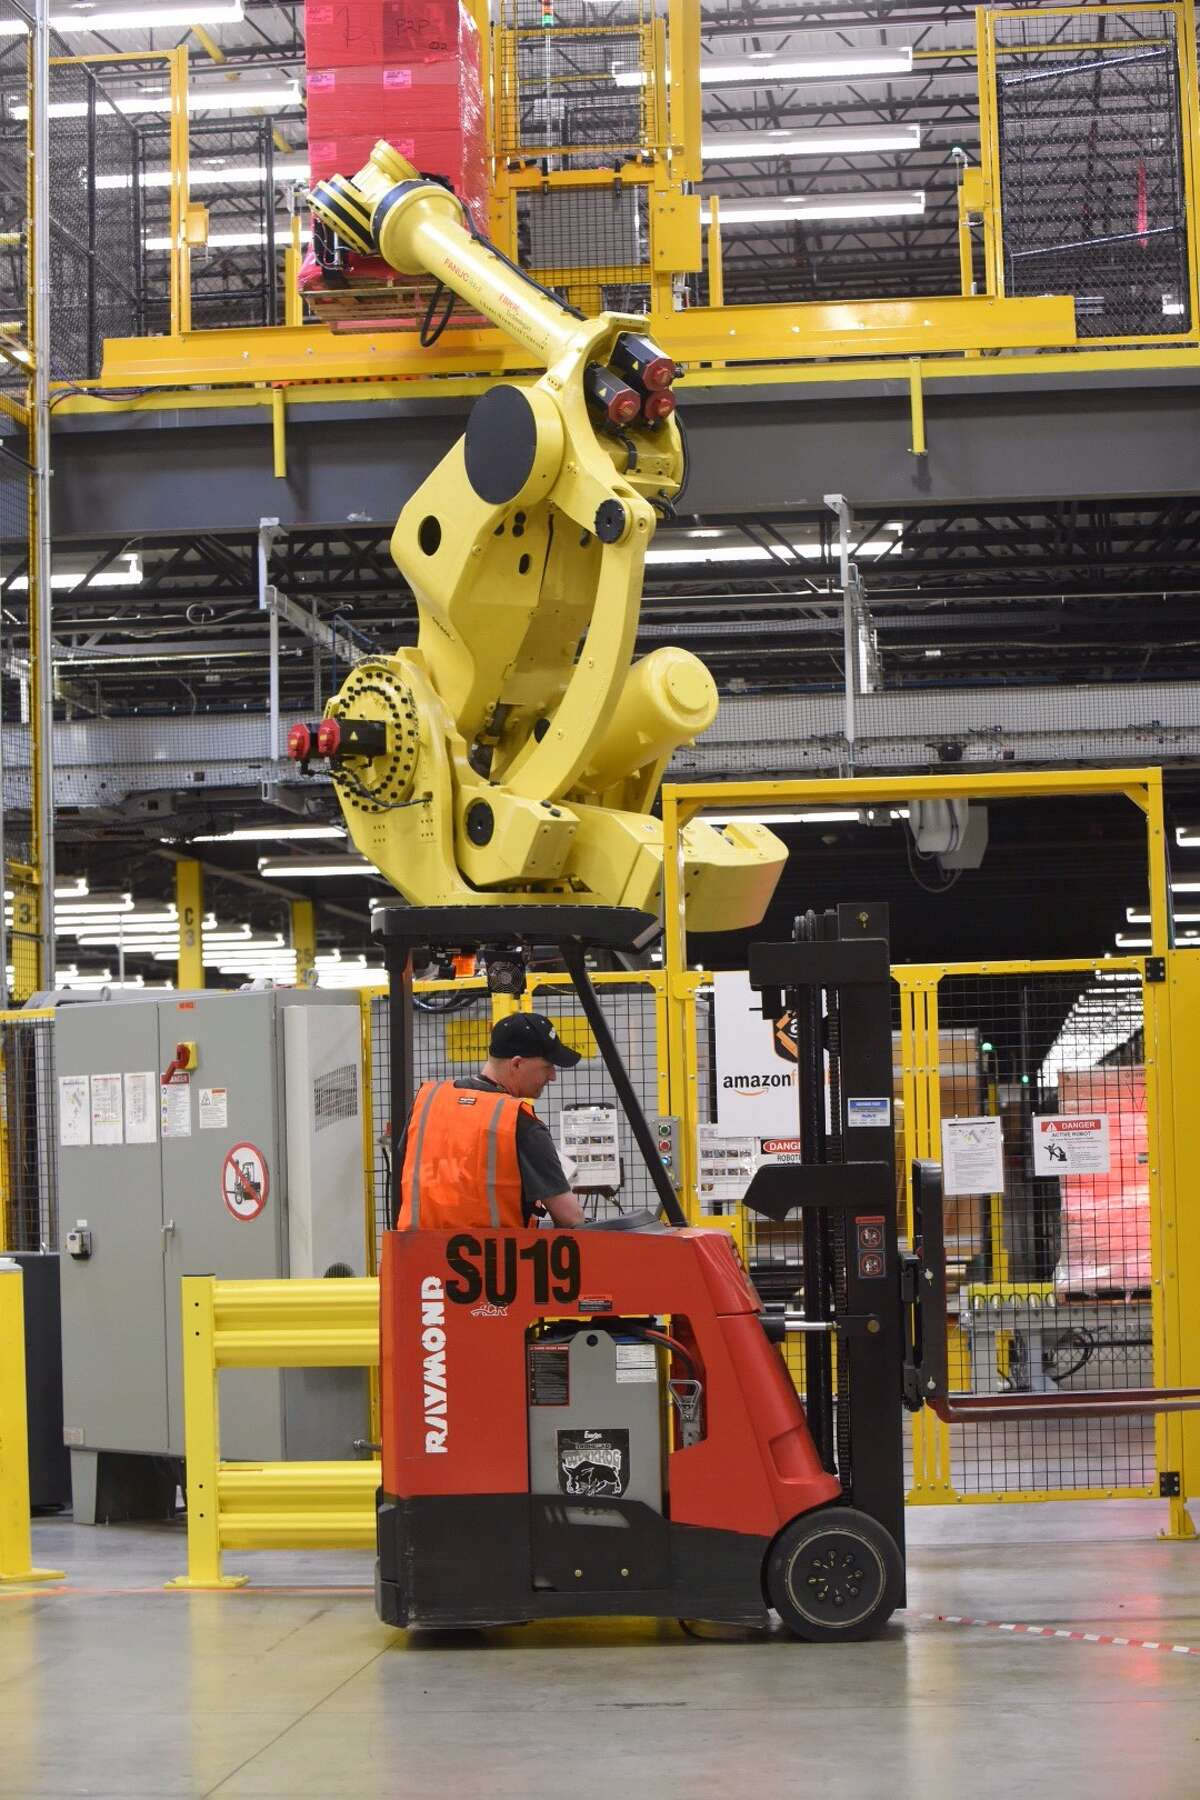 An Amazon employee works by a large robotic arm at the new Amazon Fulfillment Center in Schertz, Texas, on Friday, April 17, 2015.